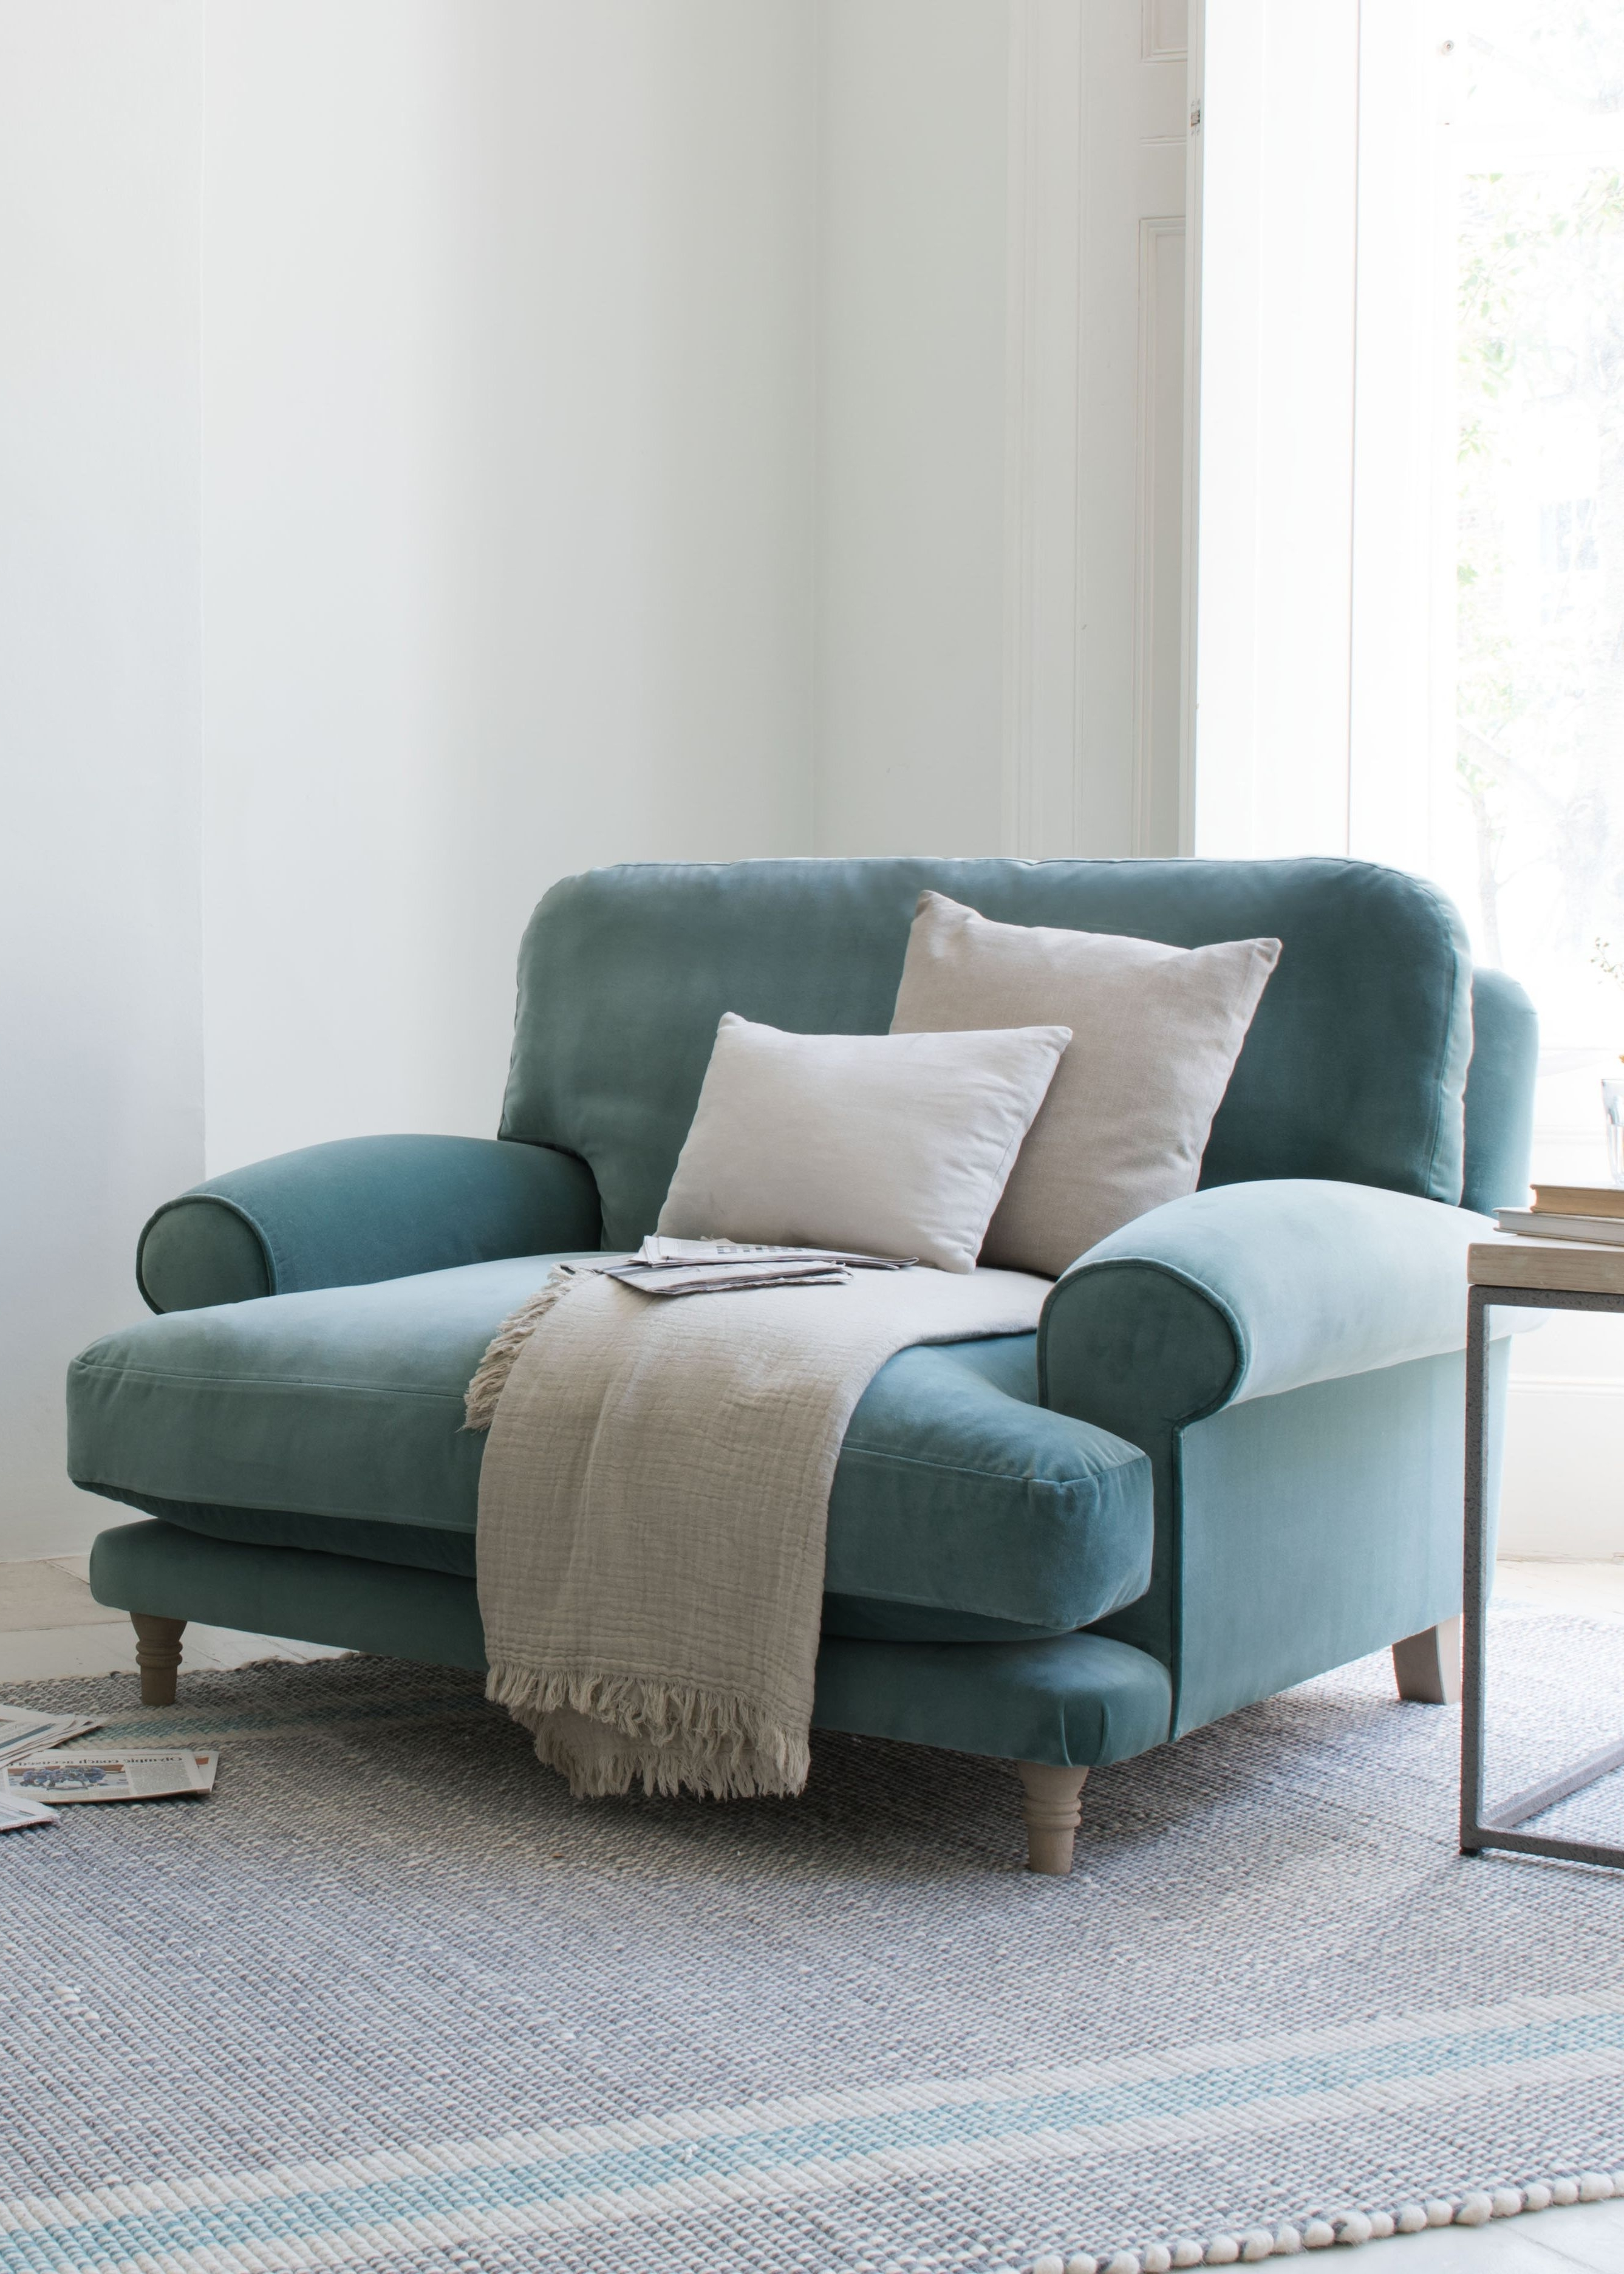 Lounge Chair : Lounge Chair Office Seating Teal Chaise Lounge Pertaining To 2018 Chaise Lounge Computer Chairs (View 11 of 15)